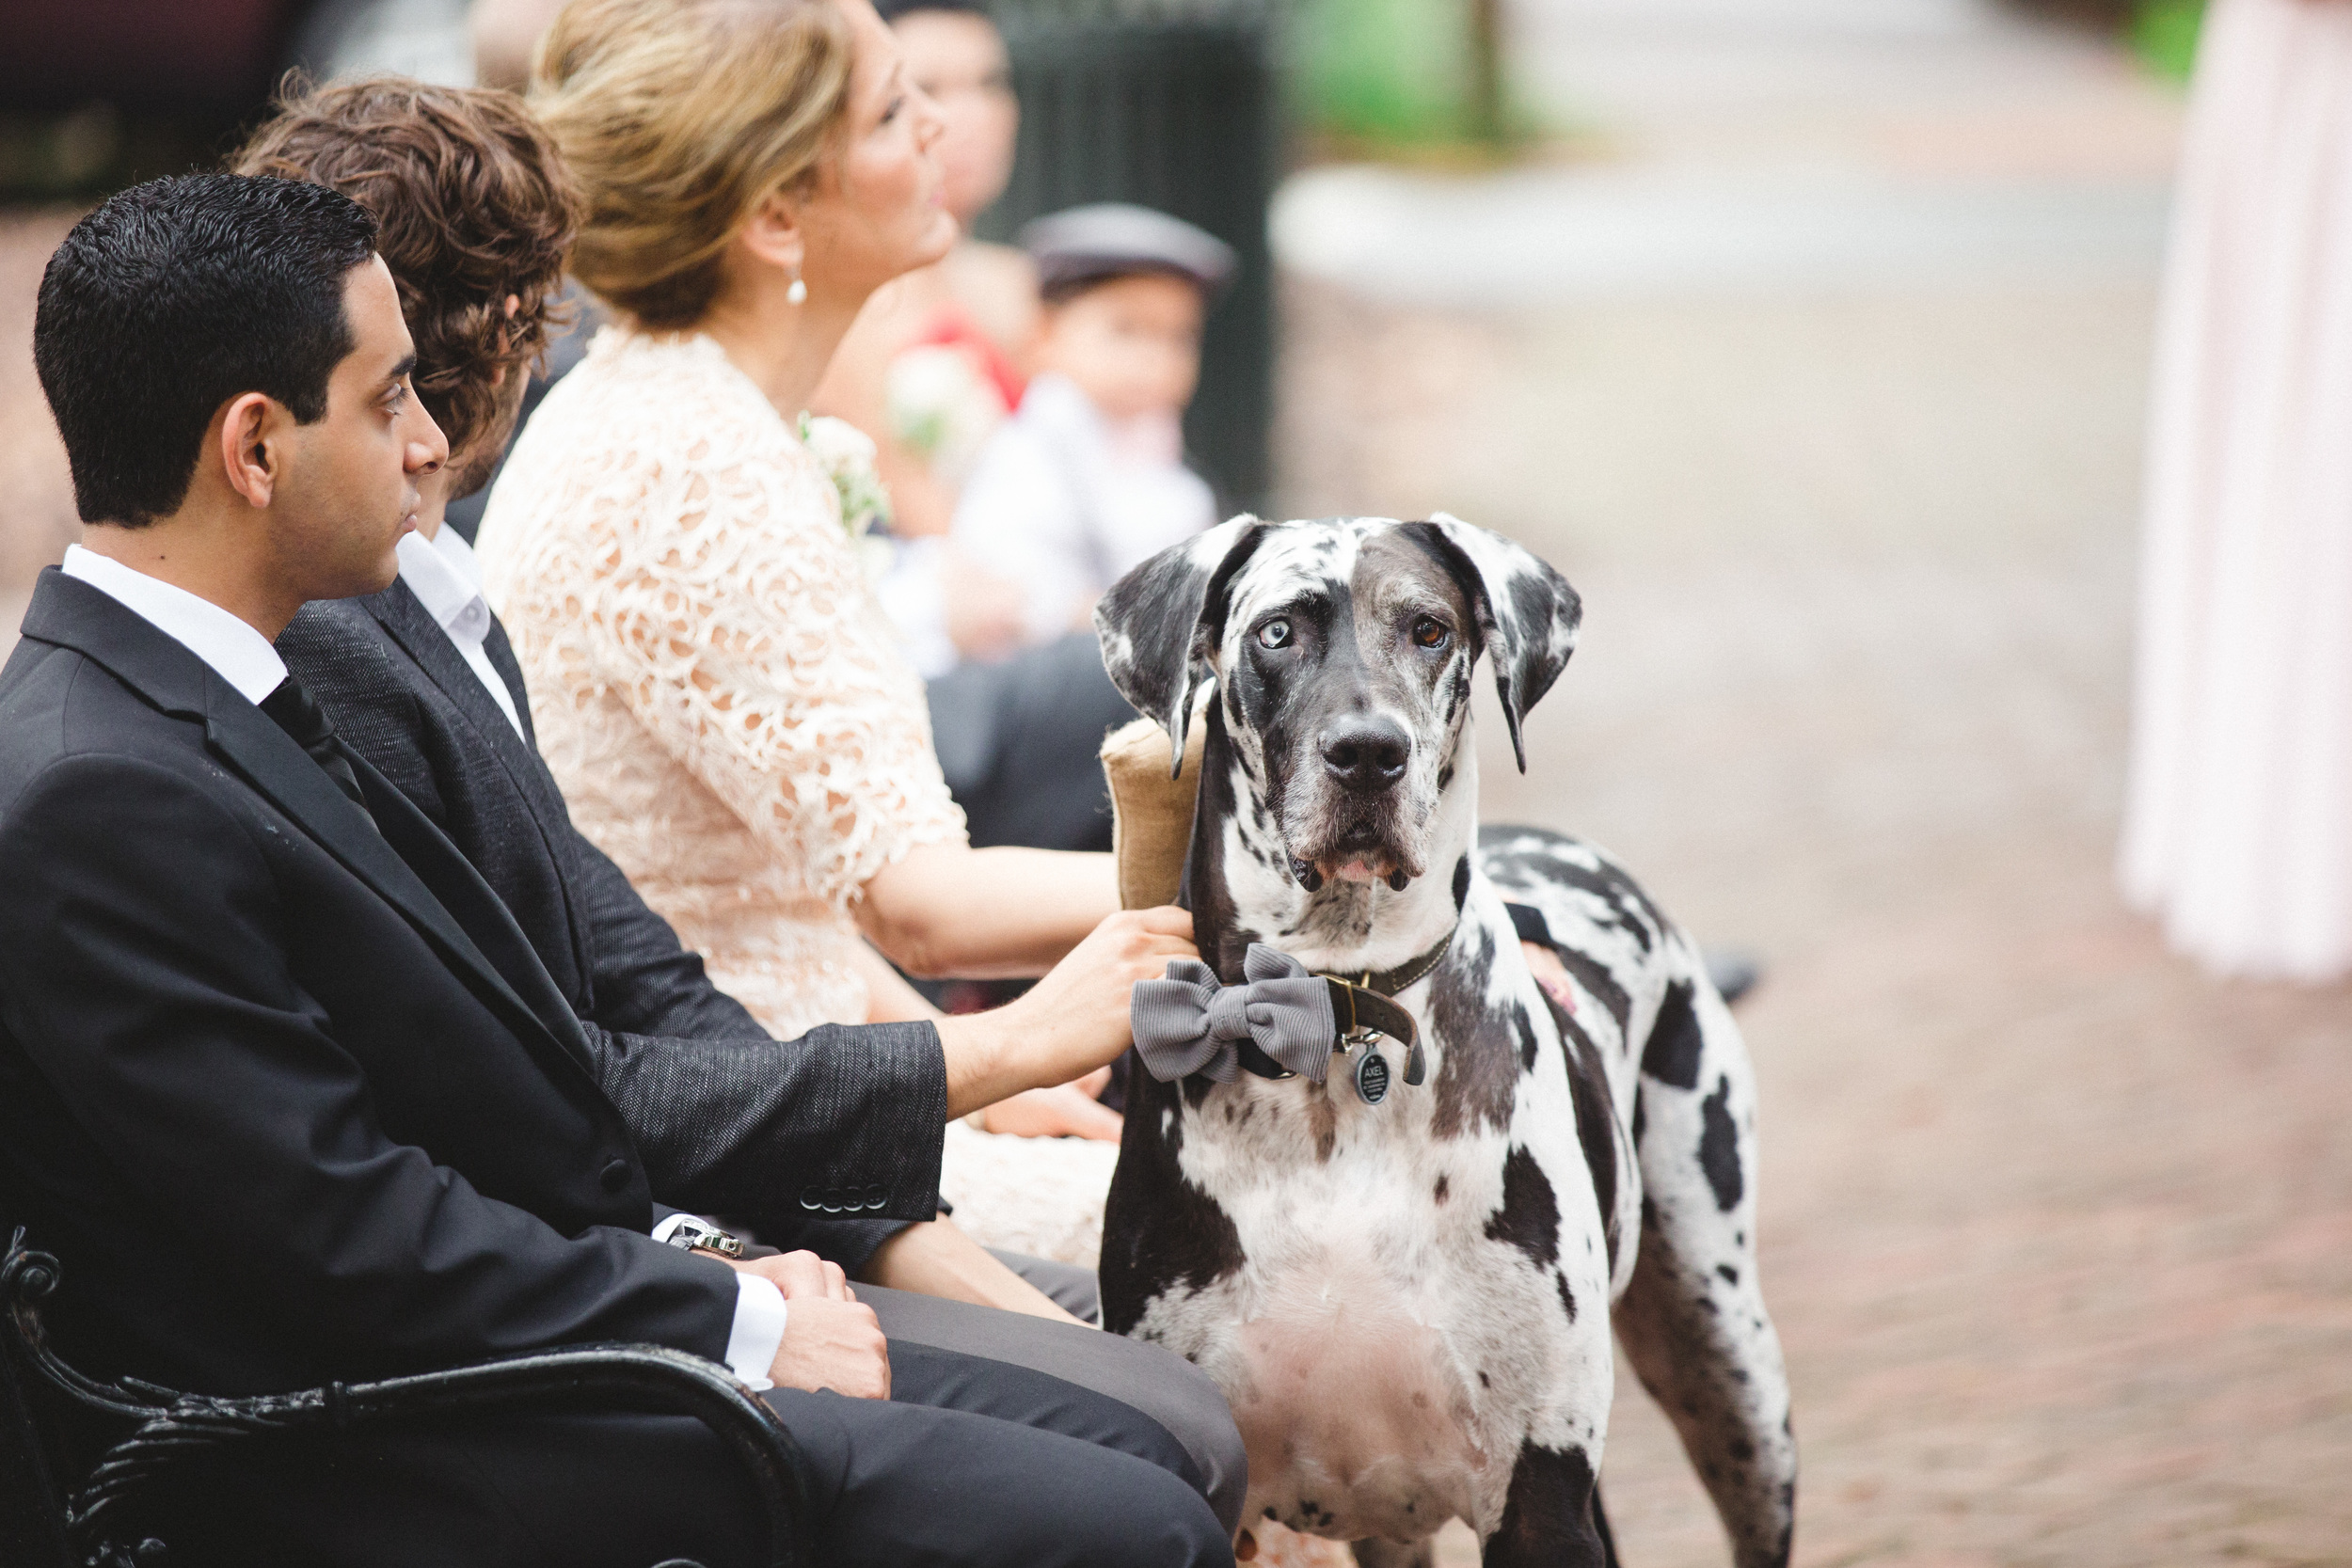 daniela-and-pedro-wedding-izzy-hudgins-photography-a-to-zinnias-whitfield-square-charles-h-morris-center-wedding-ivoyy-and-beau-bridal-boutique-dorie-hayley-paige-savannah-wedding-planner-savannah-bridal-boutique-savannah-weddings-27.jpg